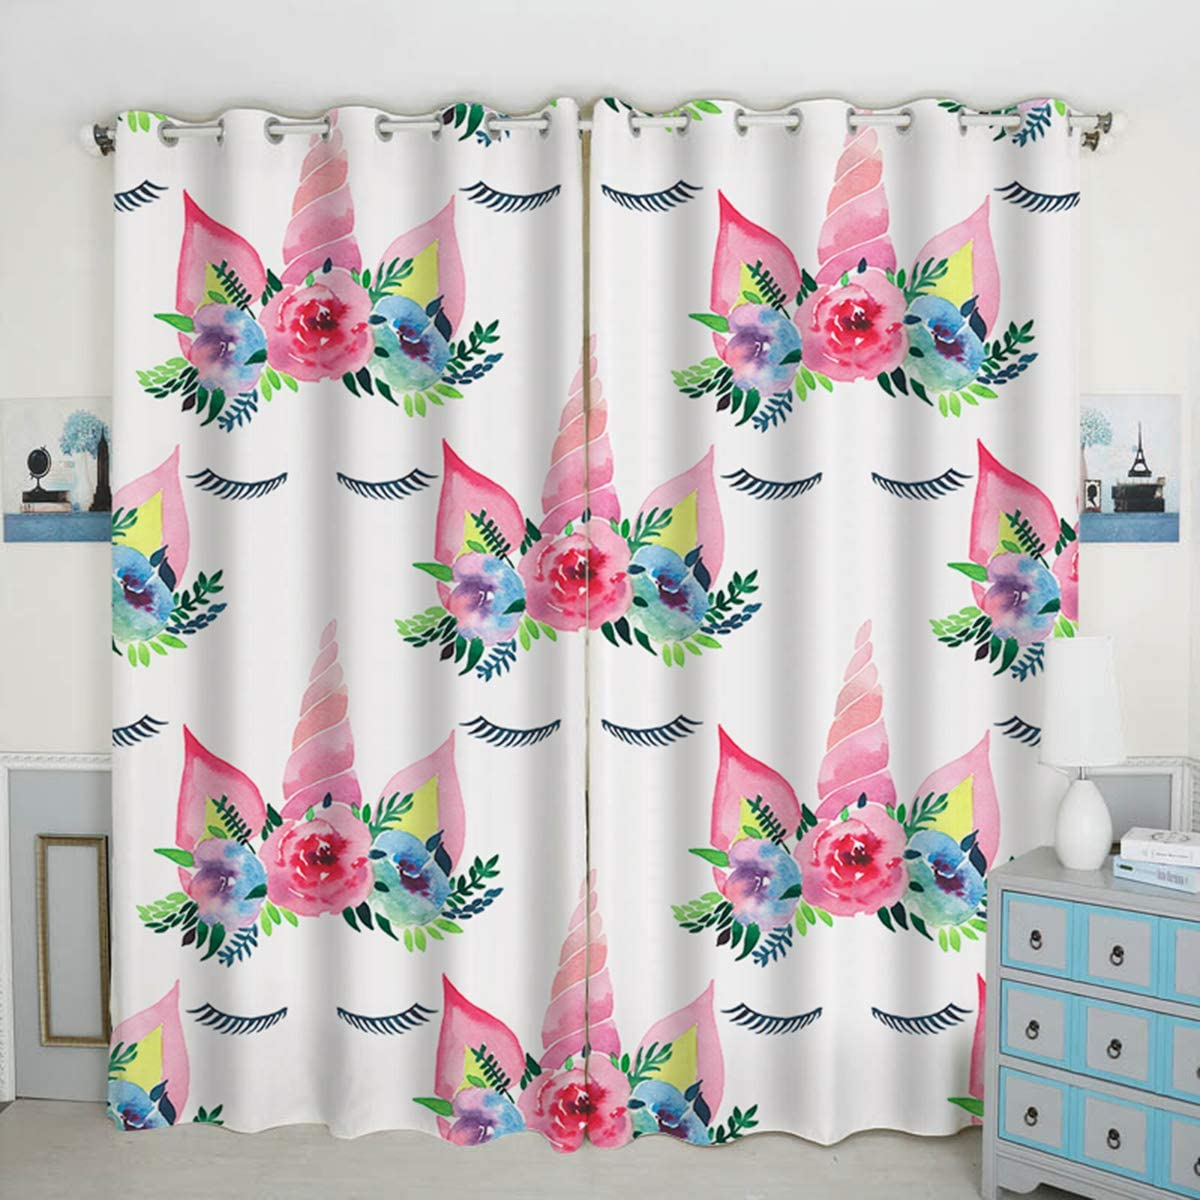 QH Window Curtain Panels Magical Unicorns with Eyelashes Pattern Blackout Curtain Panels Thermal Insulated Light Blocking 42W x 84L inch Set of 2 Panels